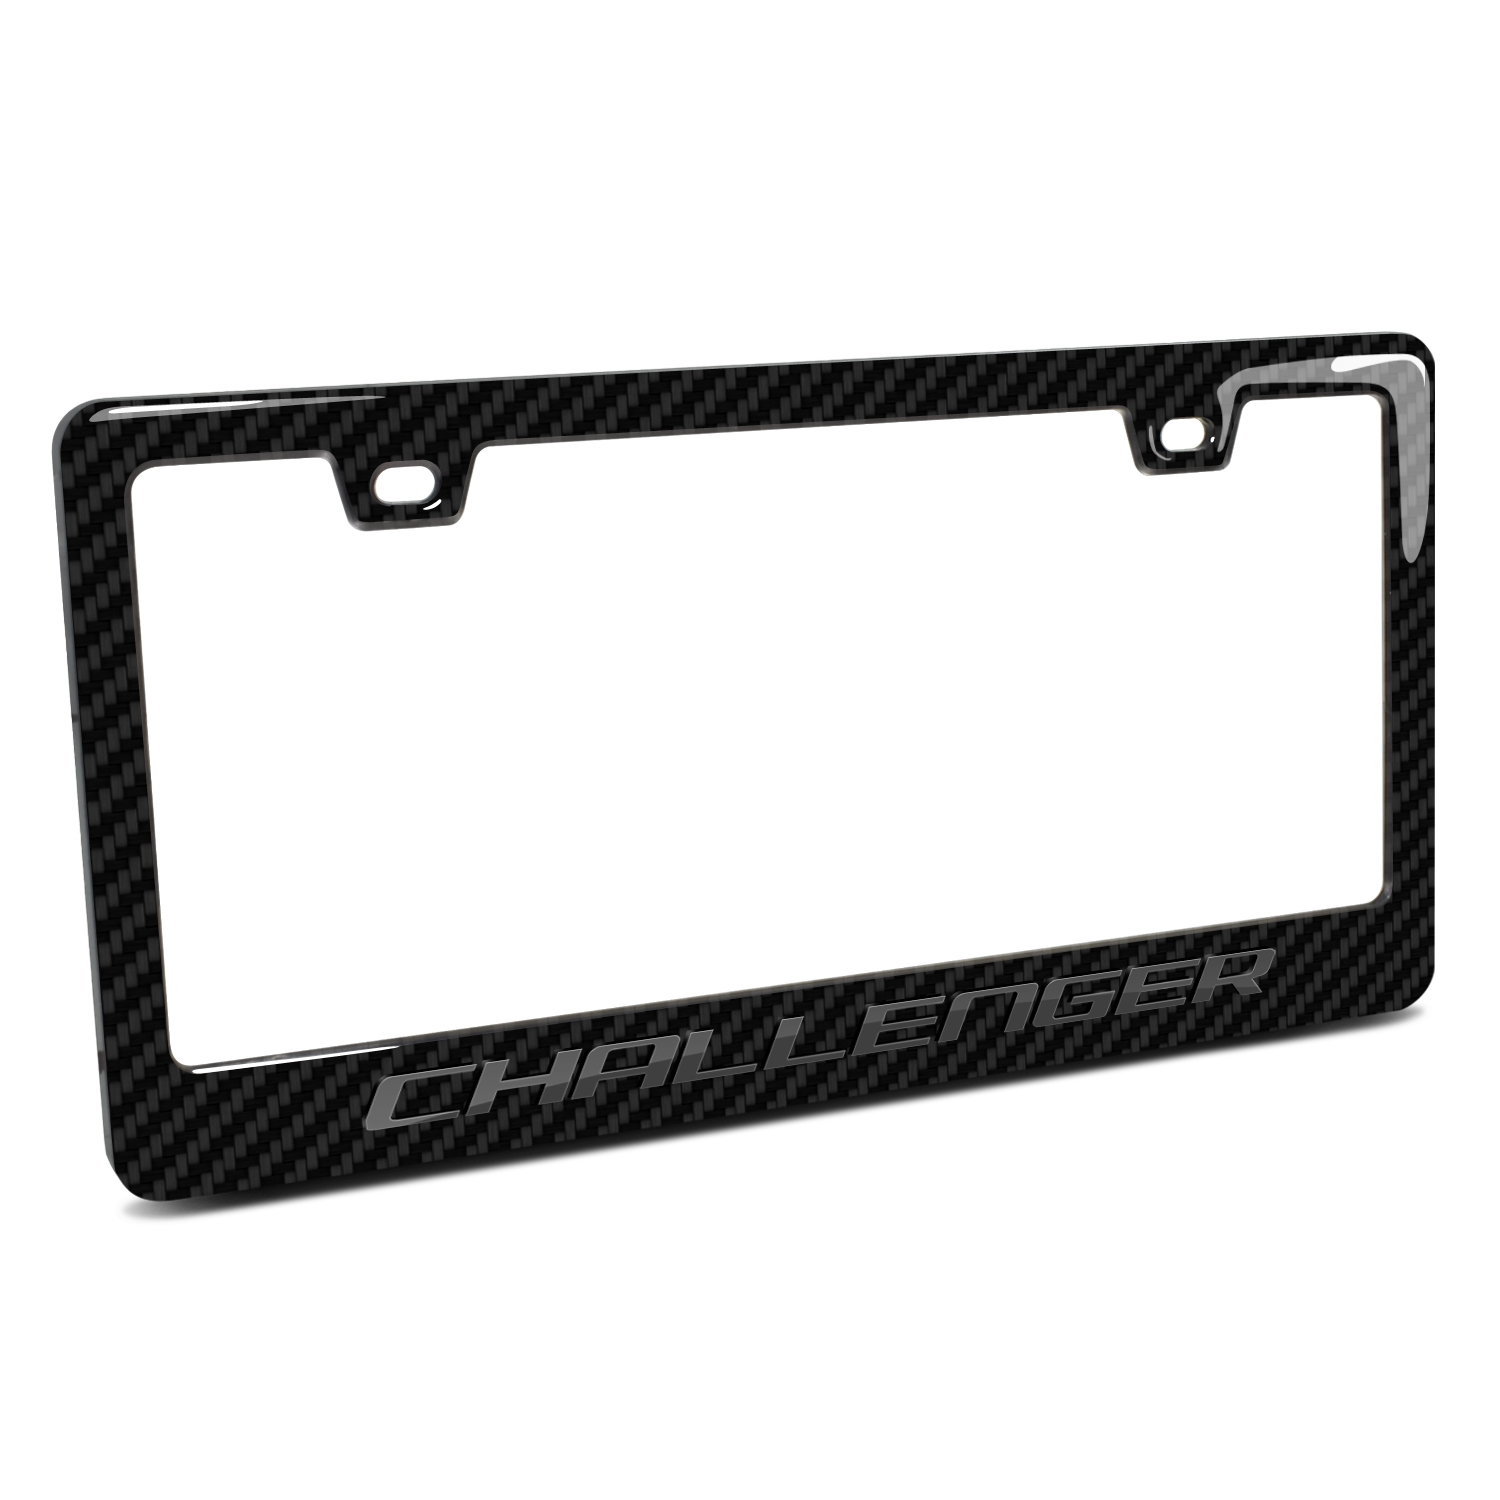 Dodge Challenger in 3D Black on Black Real 3K Carbon Fiber Finish ABS Plastic License Plate Frame